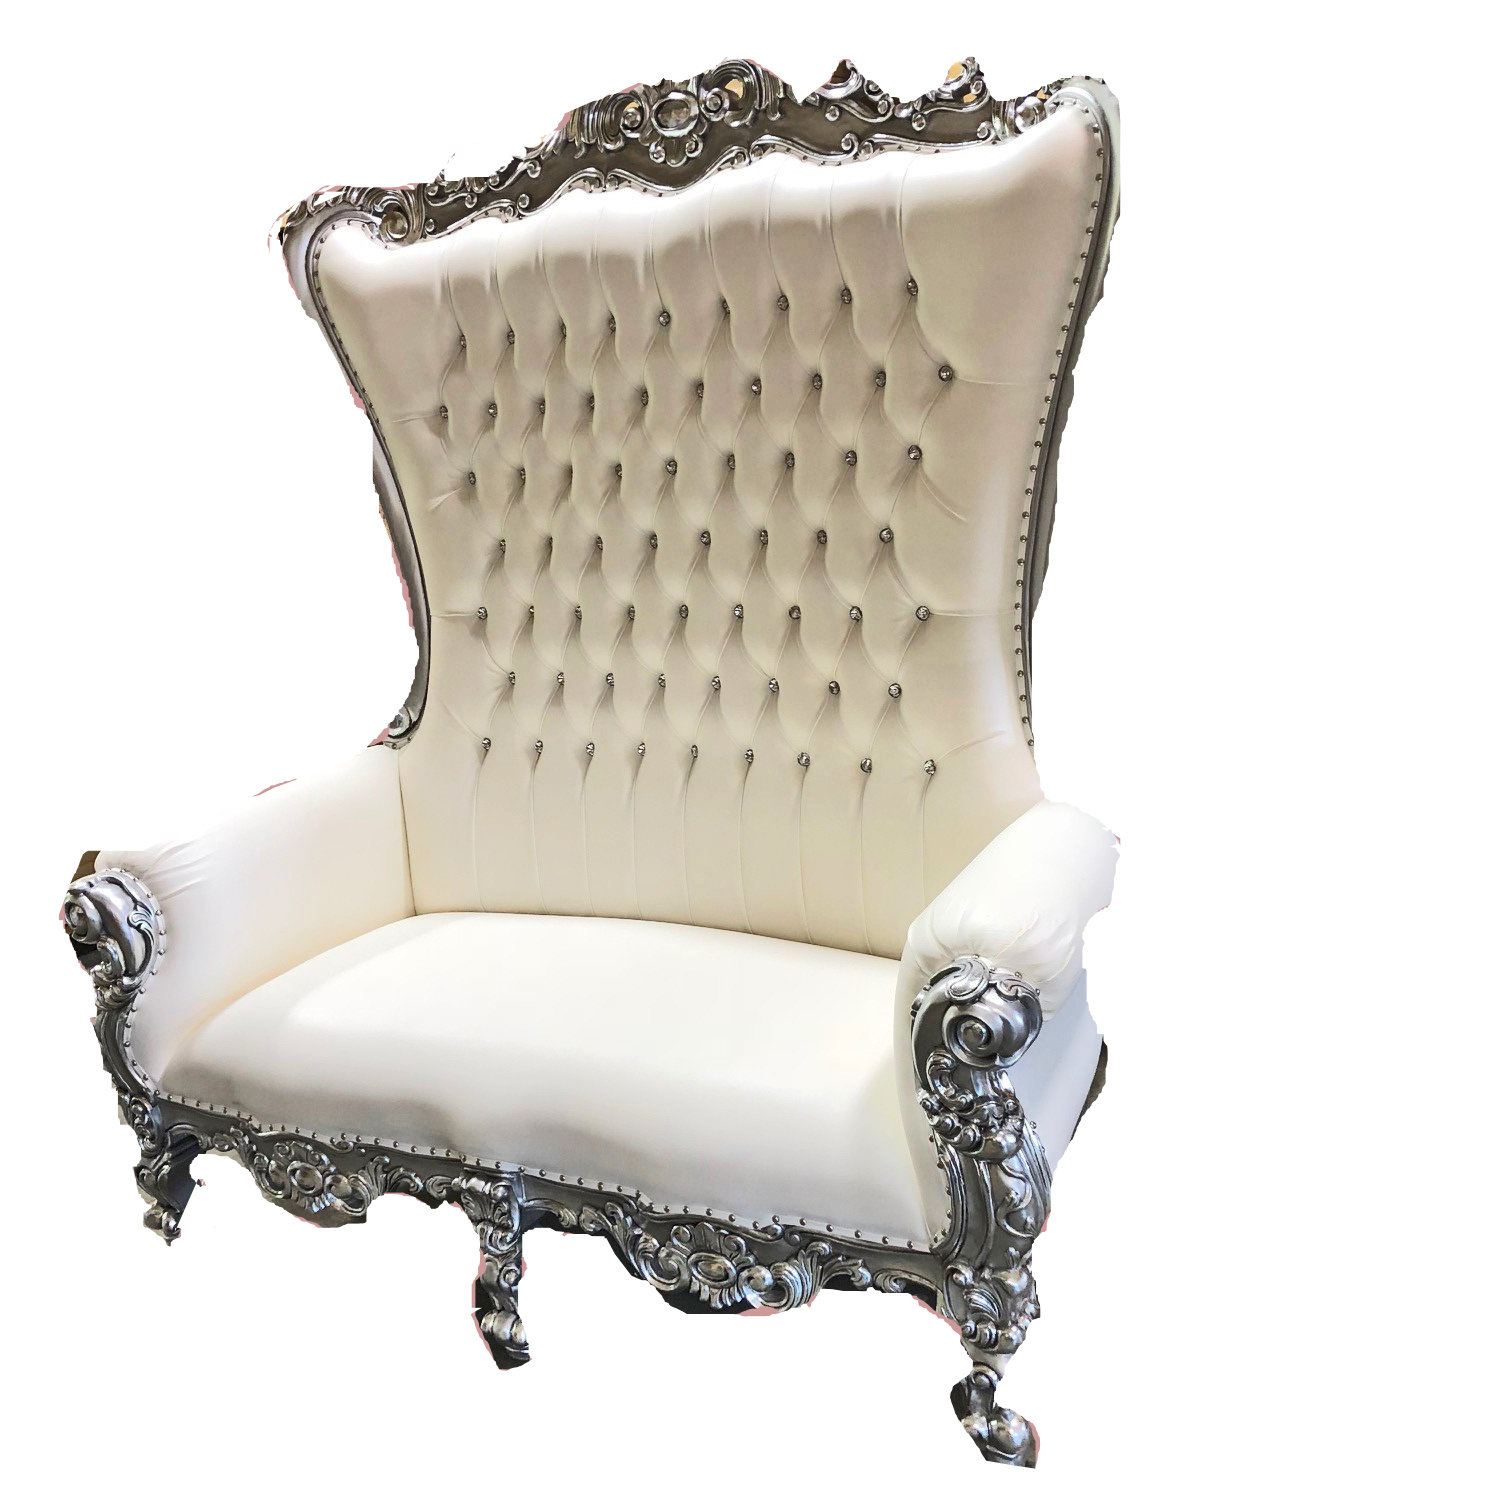 High Back Queen Throne Loveseat - White & Silver High Back Queen Throne Loveseat - White & Silver